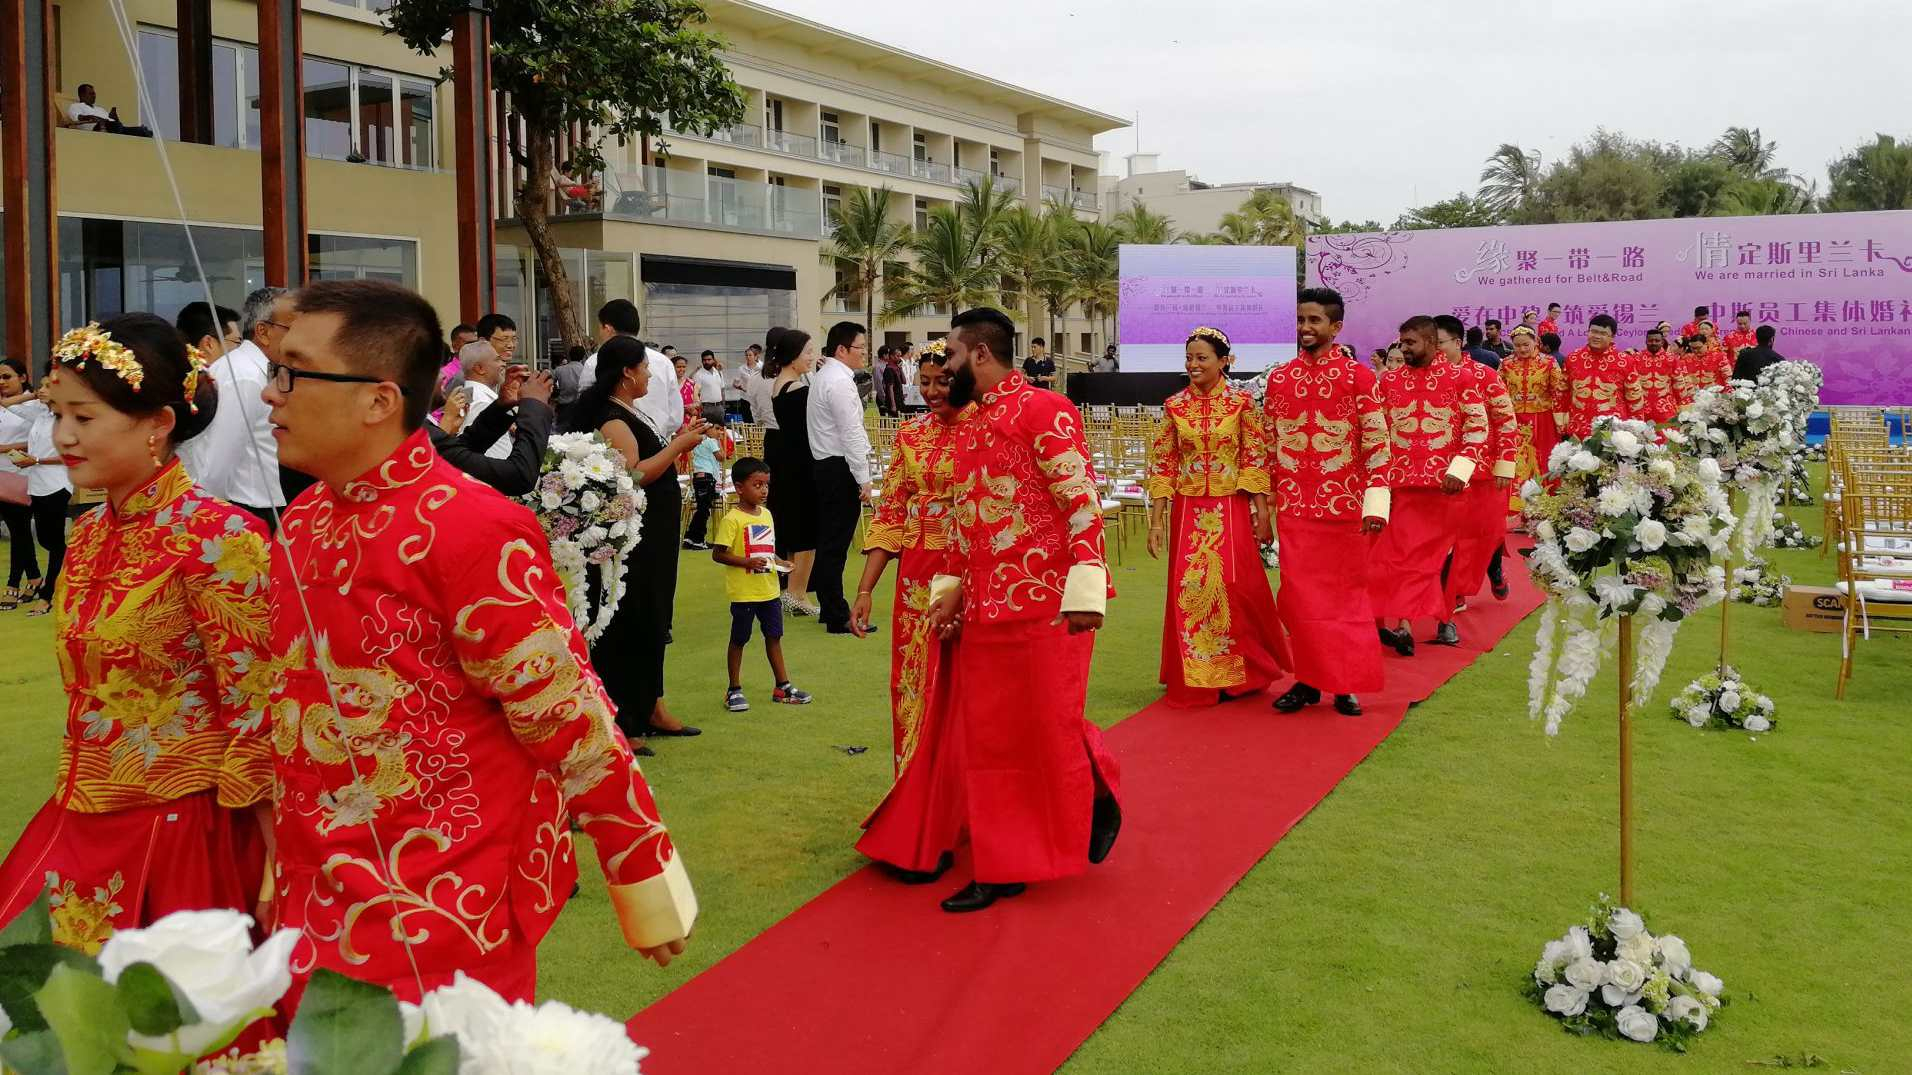 19 Chinese, Sri Lankan couples wedded at mass ceremony in Sri Lanka